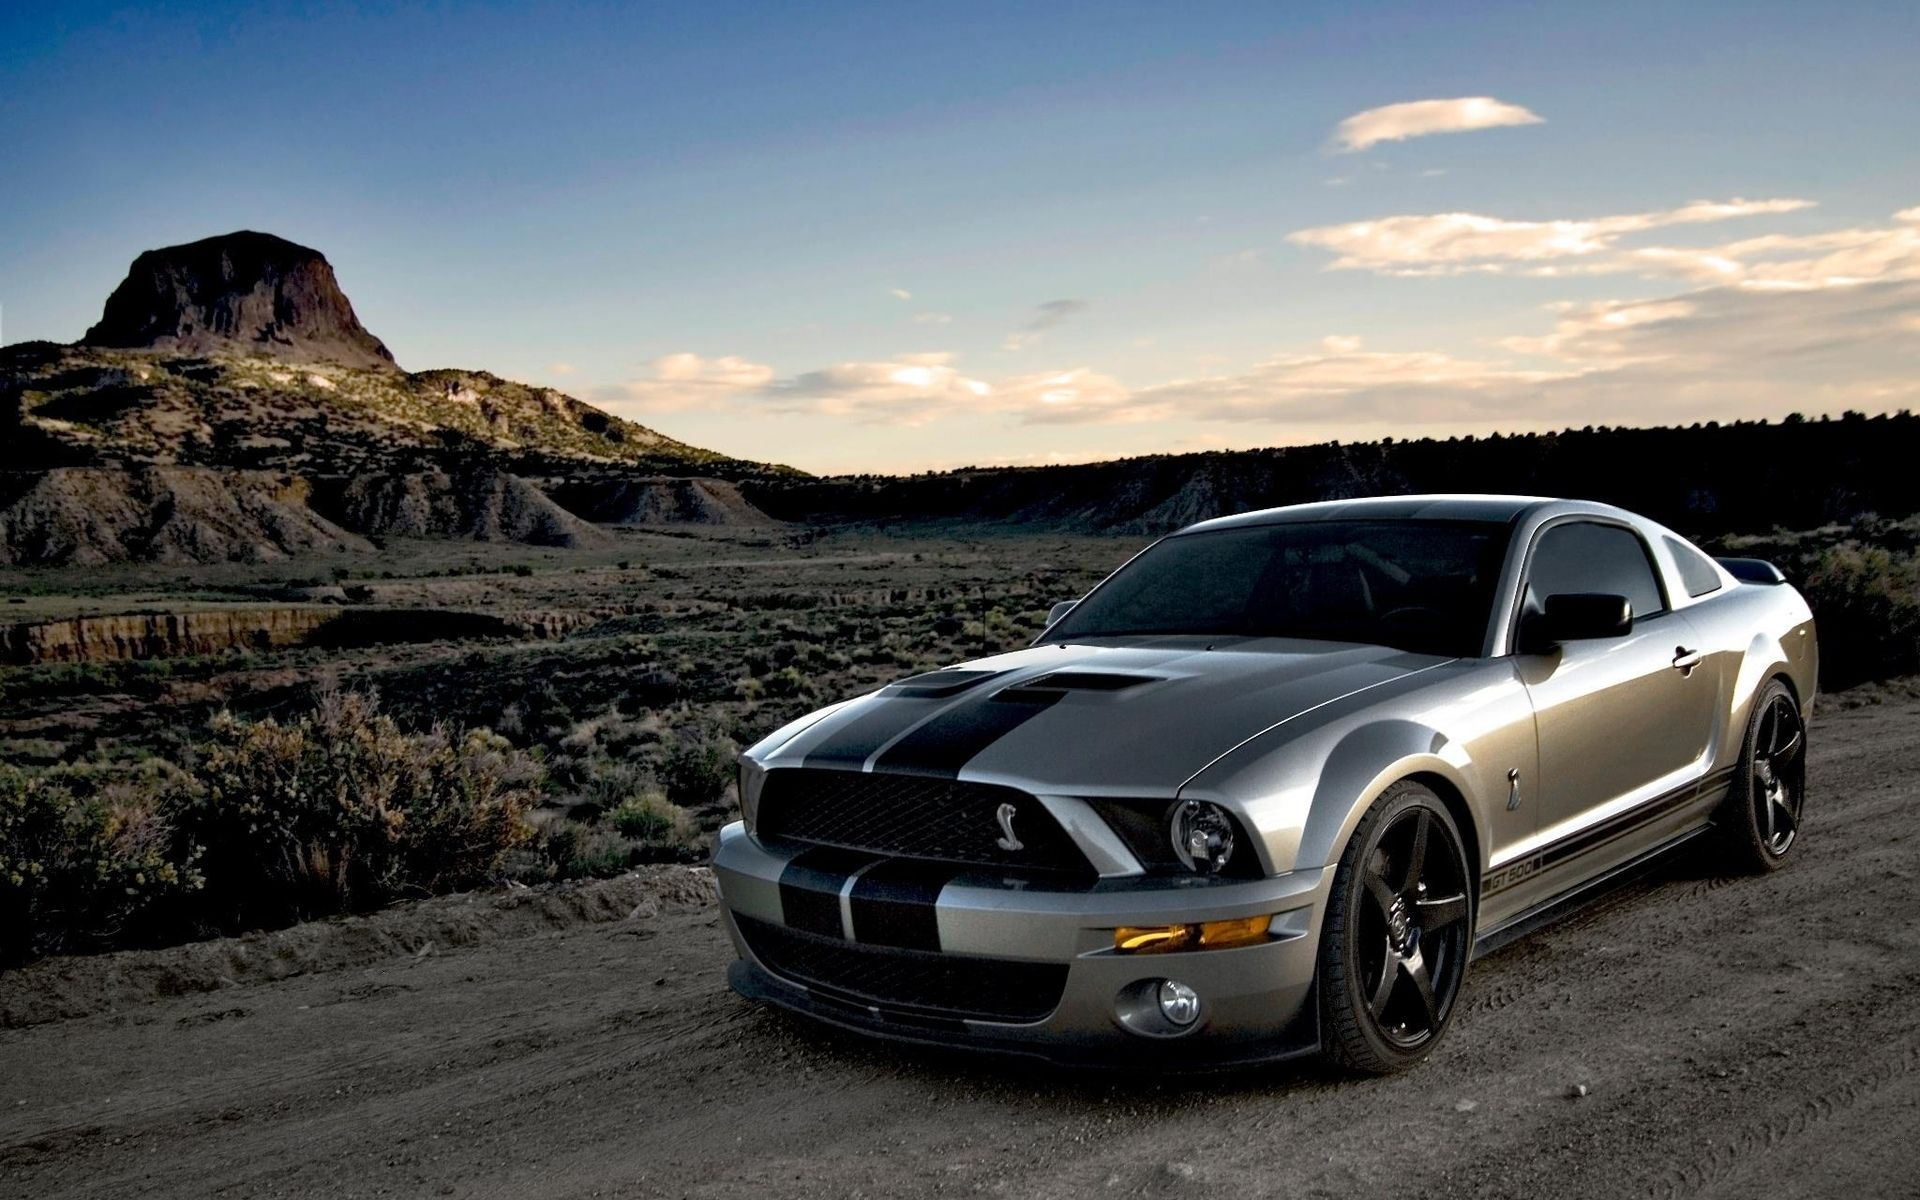 ford mustang hd wallpapers backgrounds wallpaper | hd wallpapers